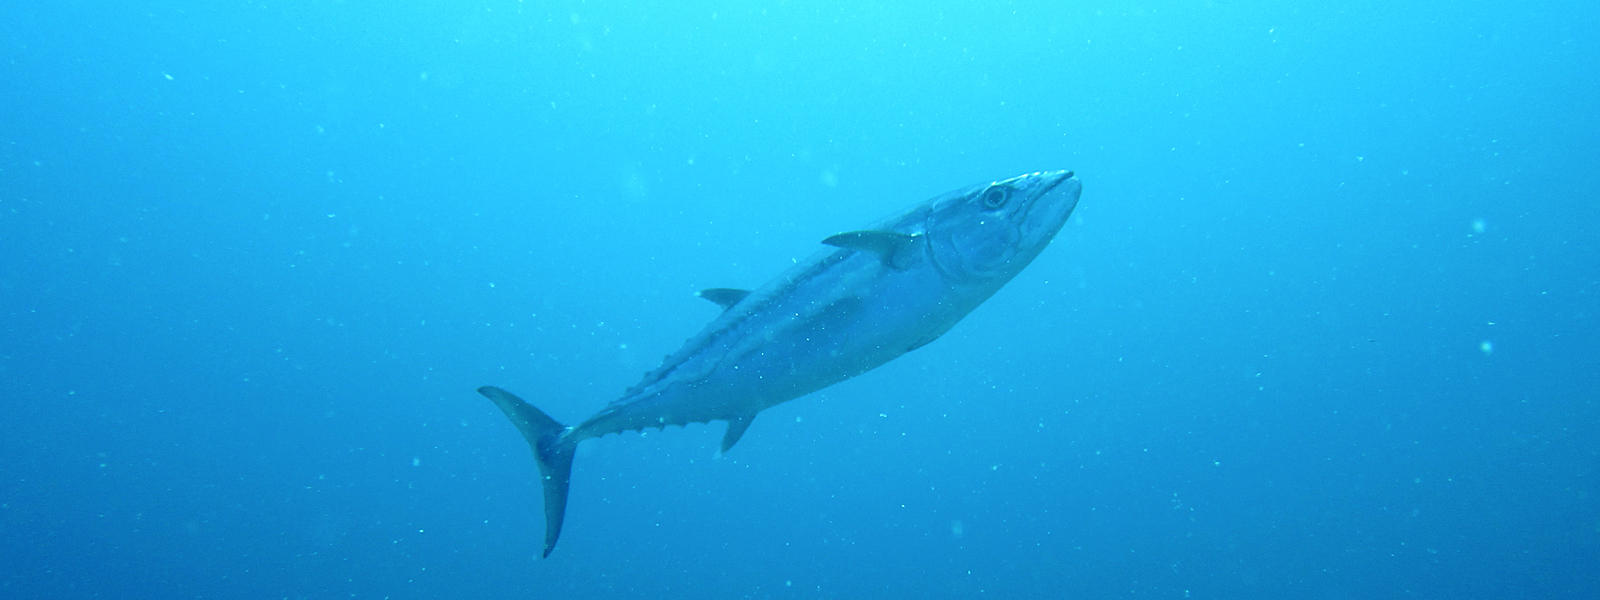 The Skipjack Tuna